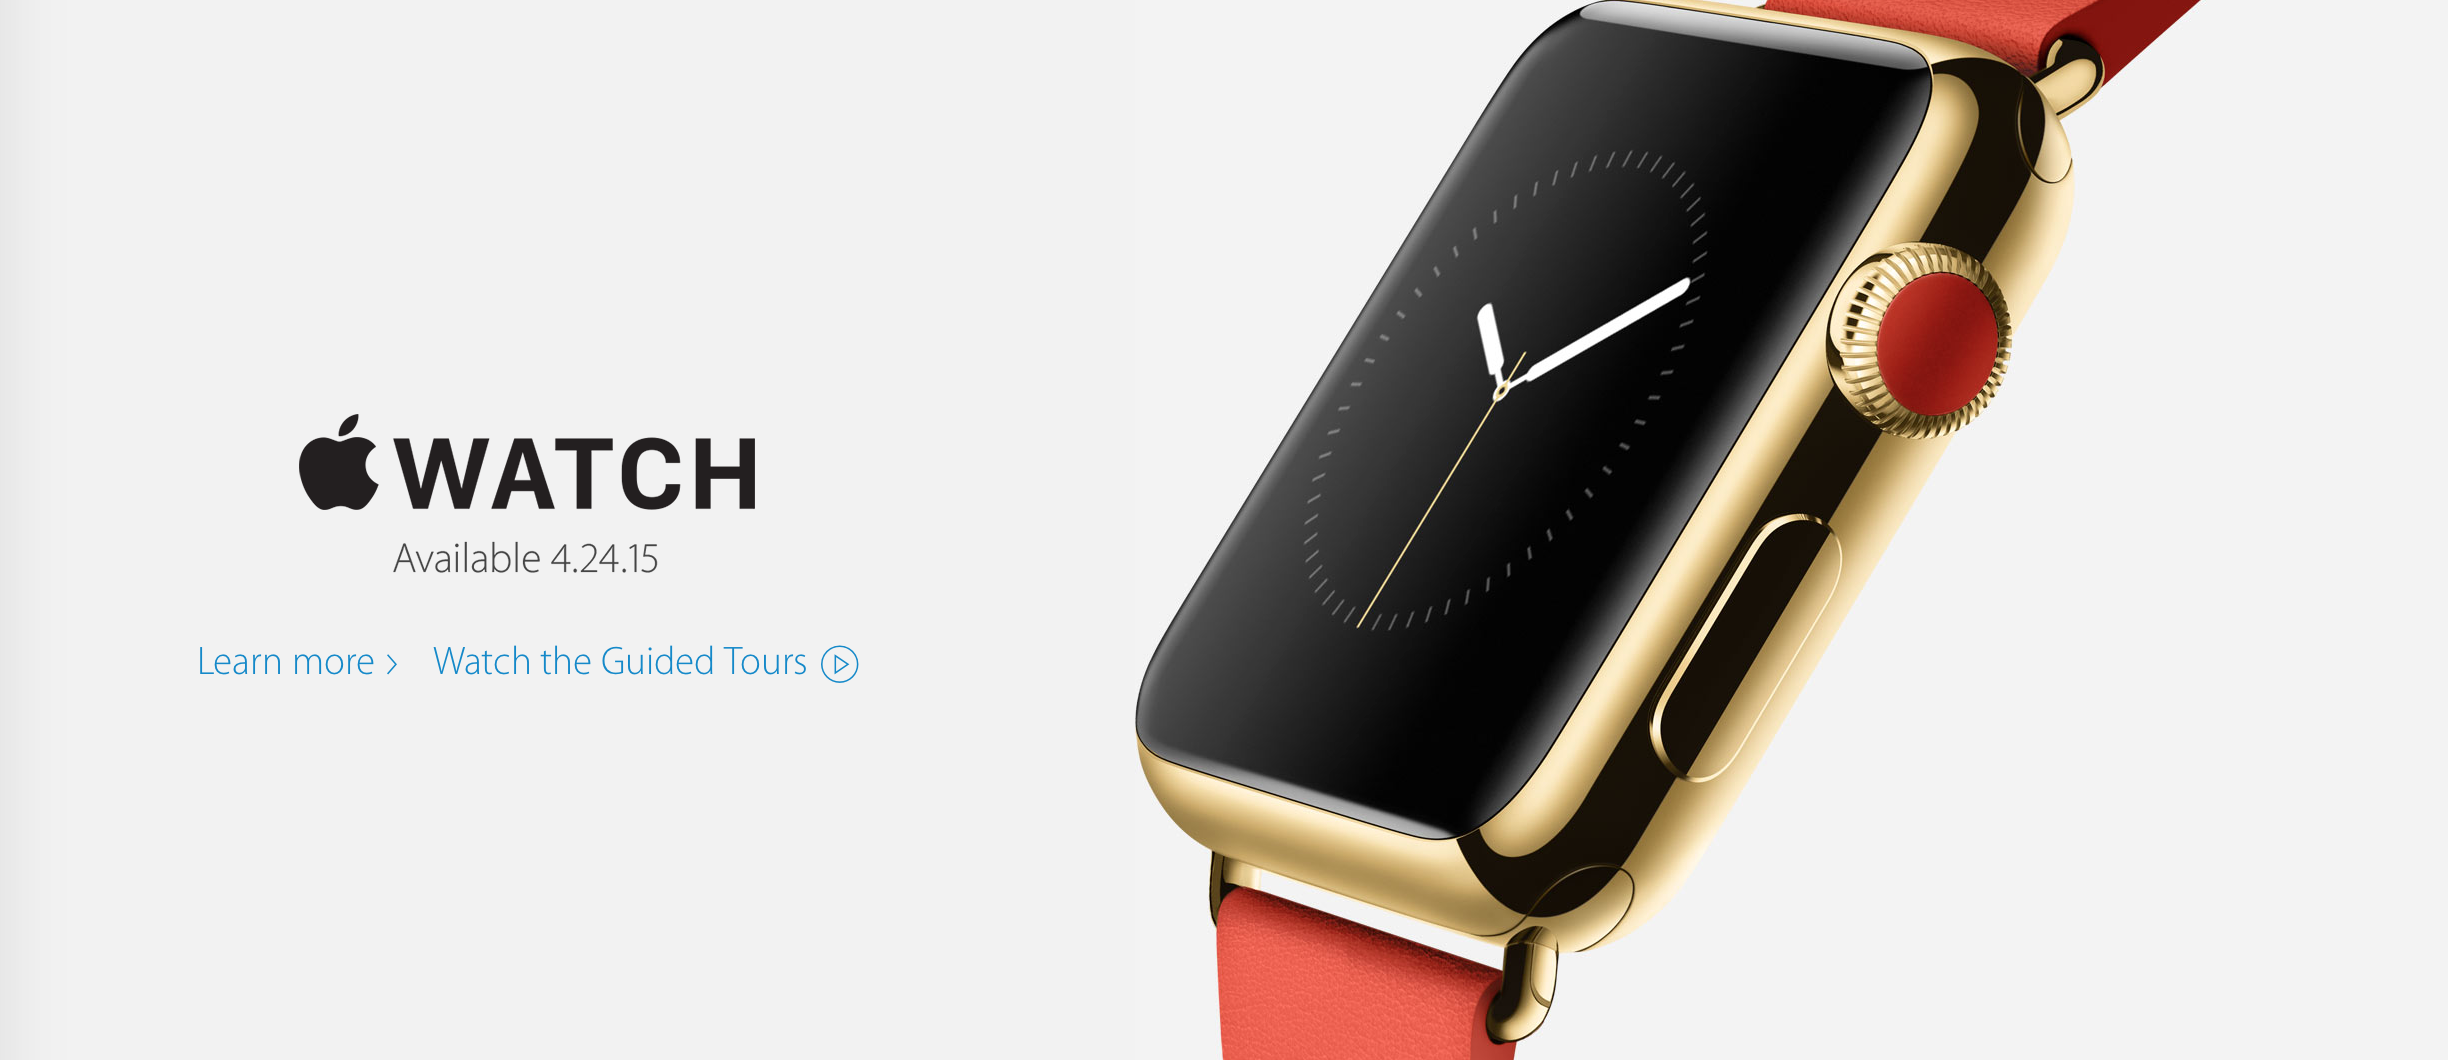 Scalpers on eBay take advantage of the Apple Watch hype